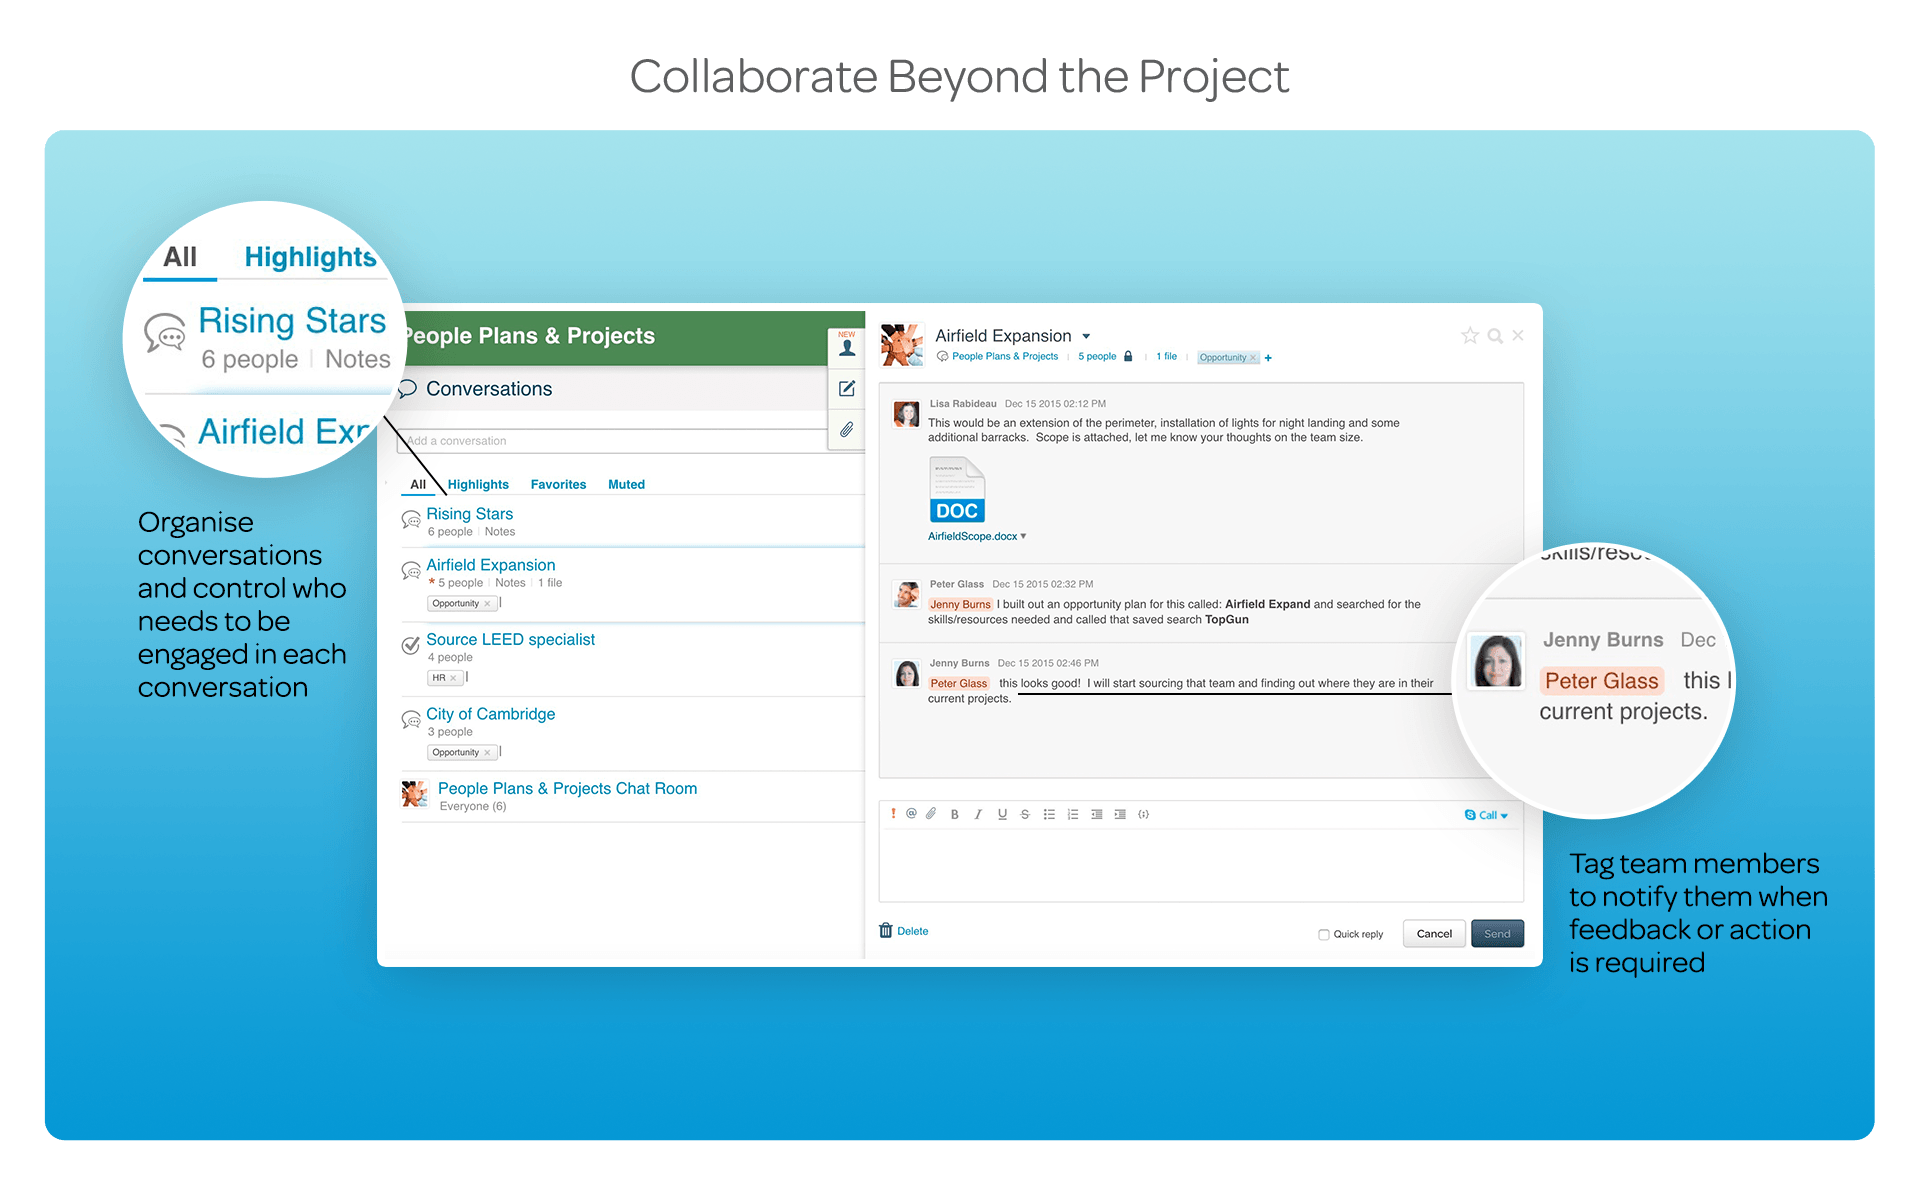 Collaborate Beyond the Project